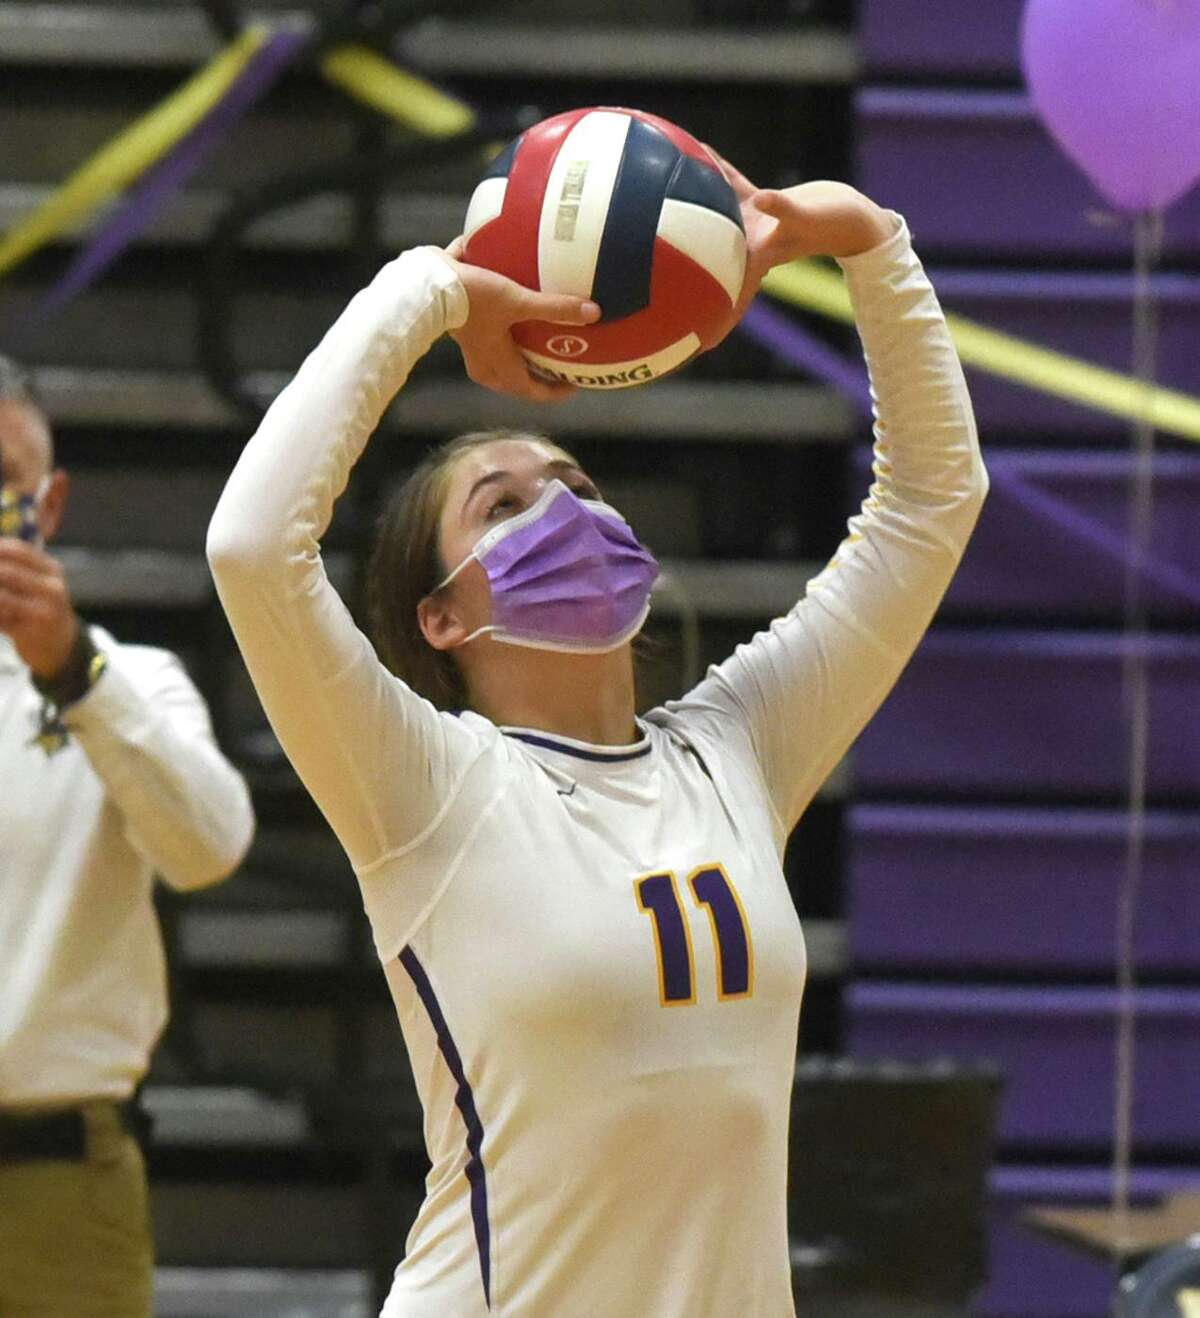 Westhill's Vana Servos (11) sets the ball during the Vikings' season-opening volleyball match against Stamford at Westhill High School on Thursday, Oct. 1, 2020